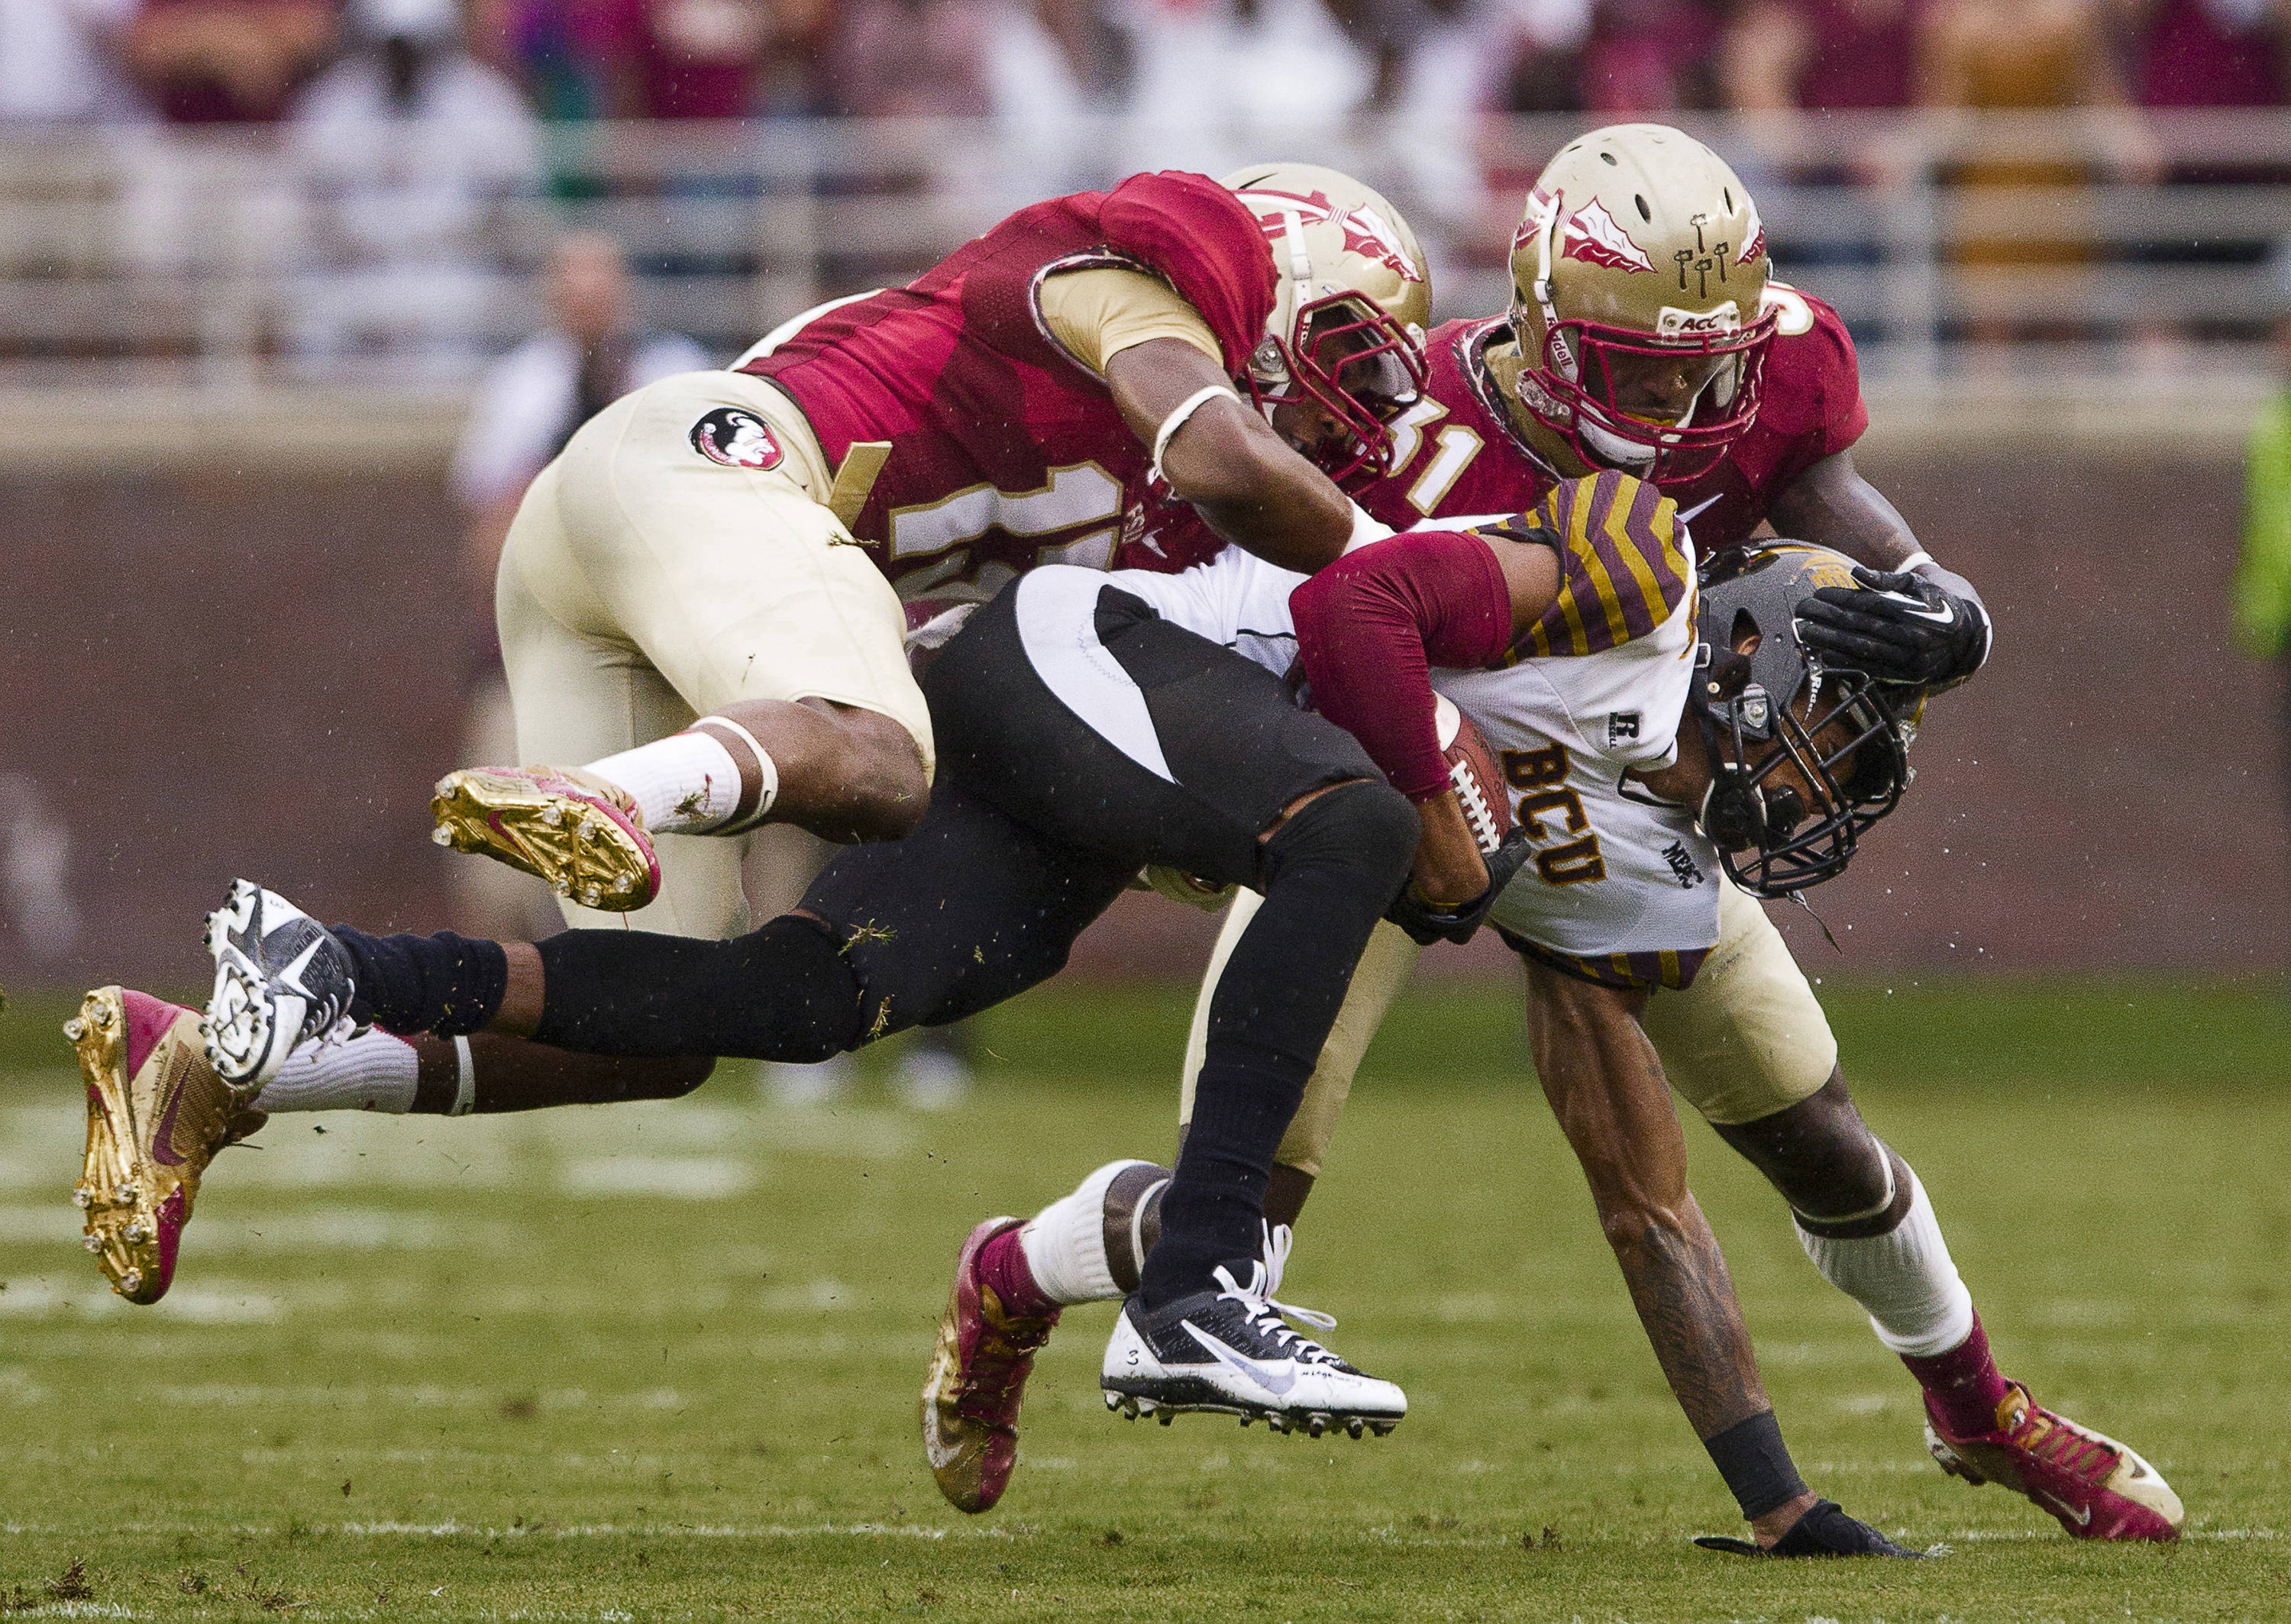 Jalen Ramsey (13) and Terrence Brooks (31) tackle a ball carrier during FSU Football's 54-6 win over Bethune-Cookman on September 21, 2013 in Tallahassee, Fla Jalen Ramsey (13)